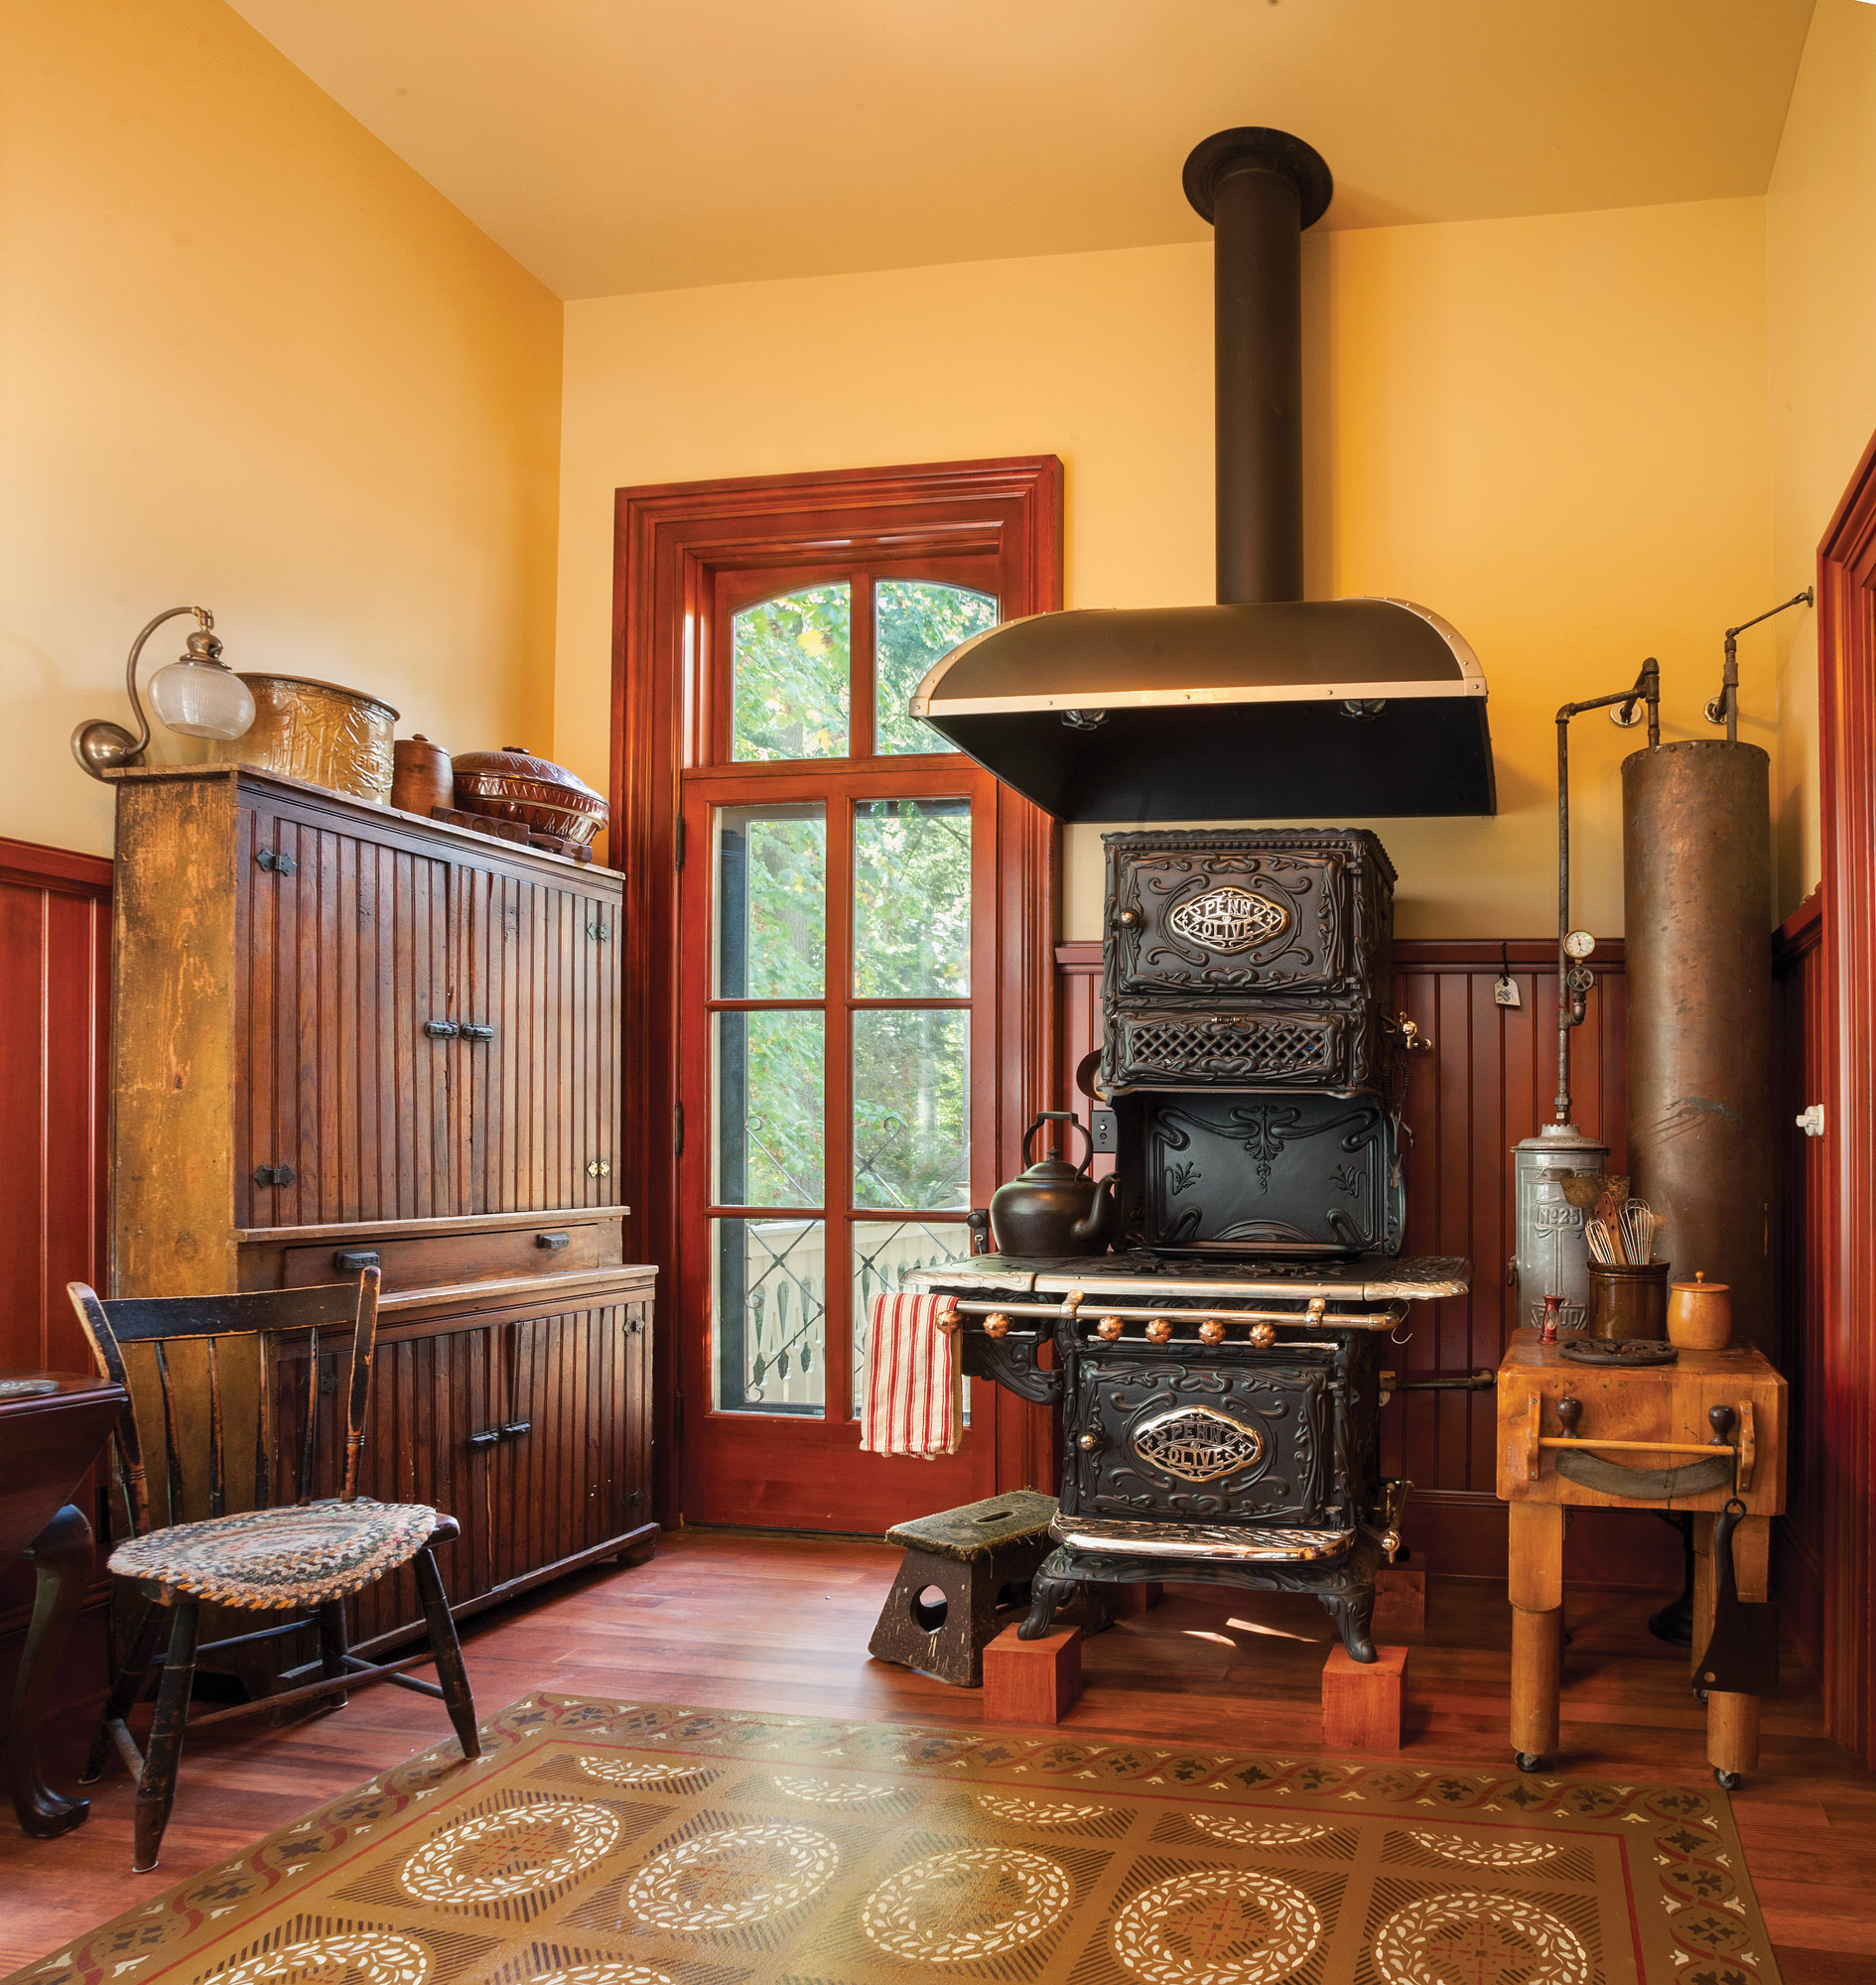 vintage kitchen, woodburning stove